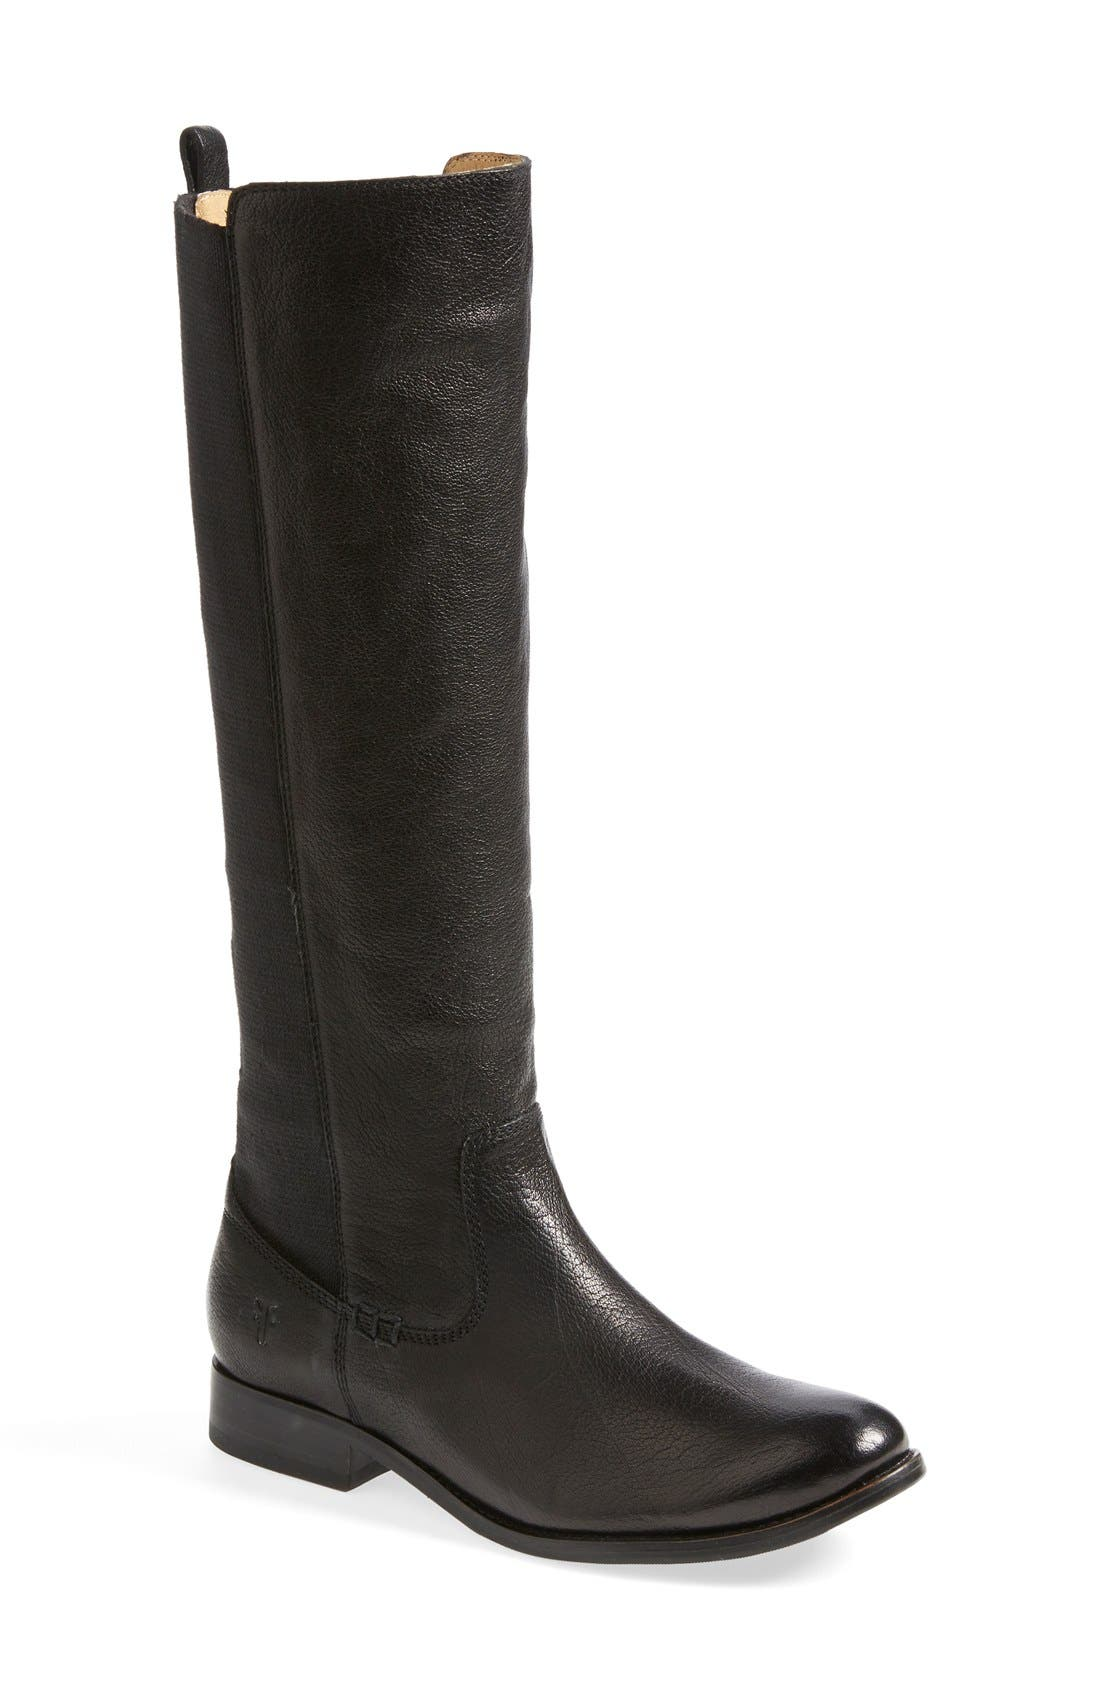 'Molly' Gore Leather Boot,                             Main thumbnail 1, color,                             001